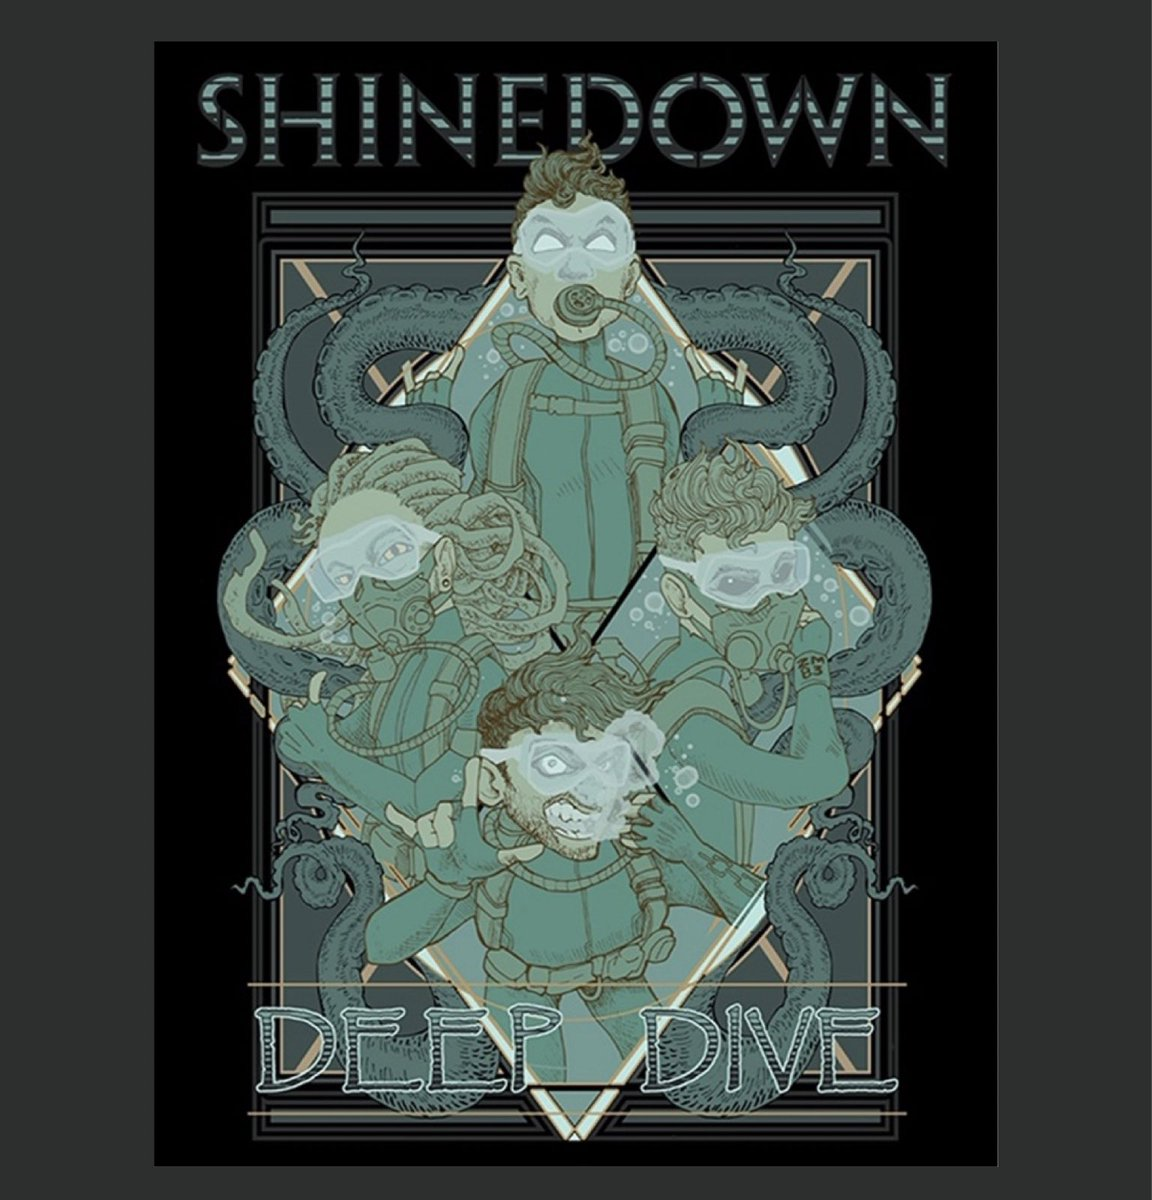 ICYMI ‼️ We just dropped another round of fresh merch including this sweet poster! Although we couldn't do this tour this year, we still wanted to make the Deep Dive merch line available to you. Check out ALL of our new products at store.shinedown.com